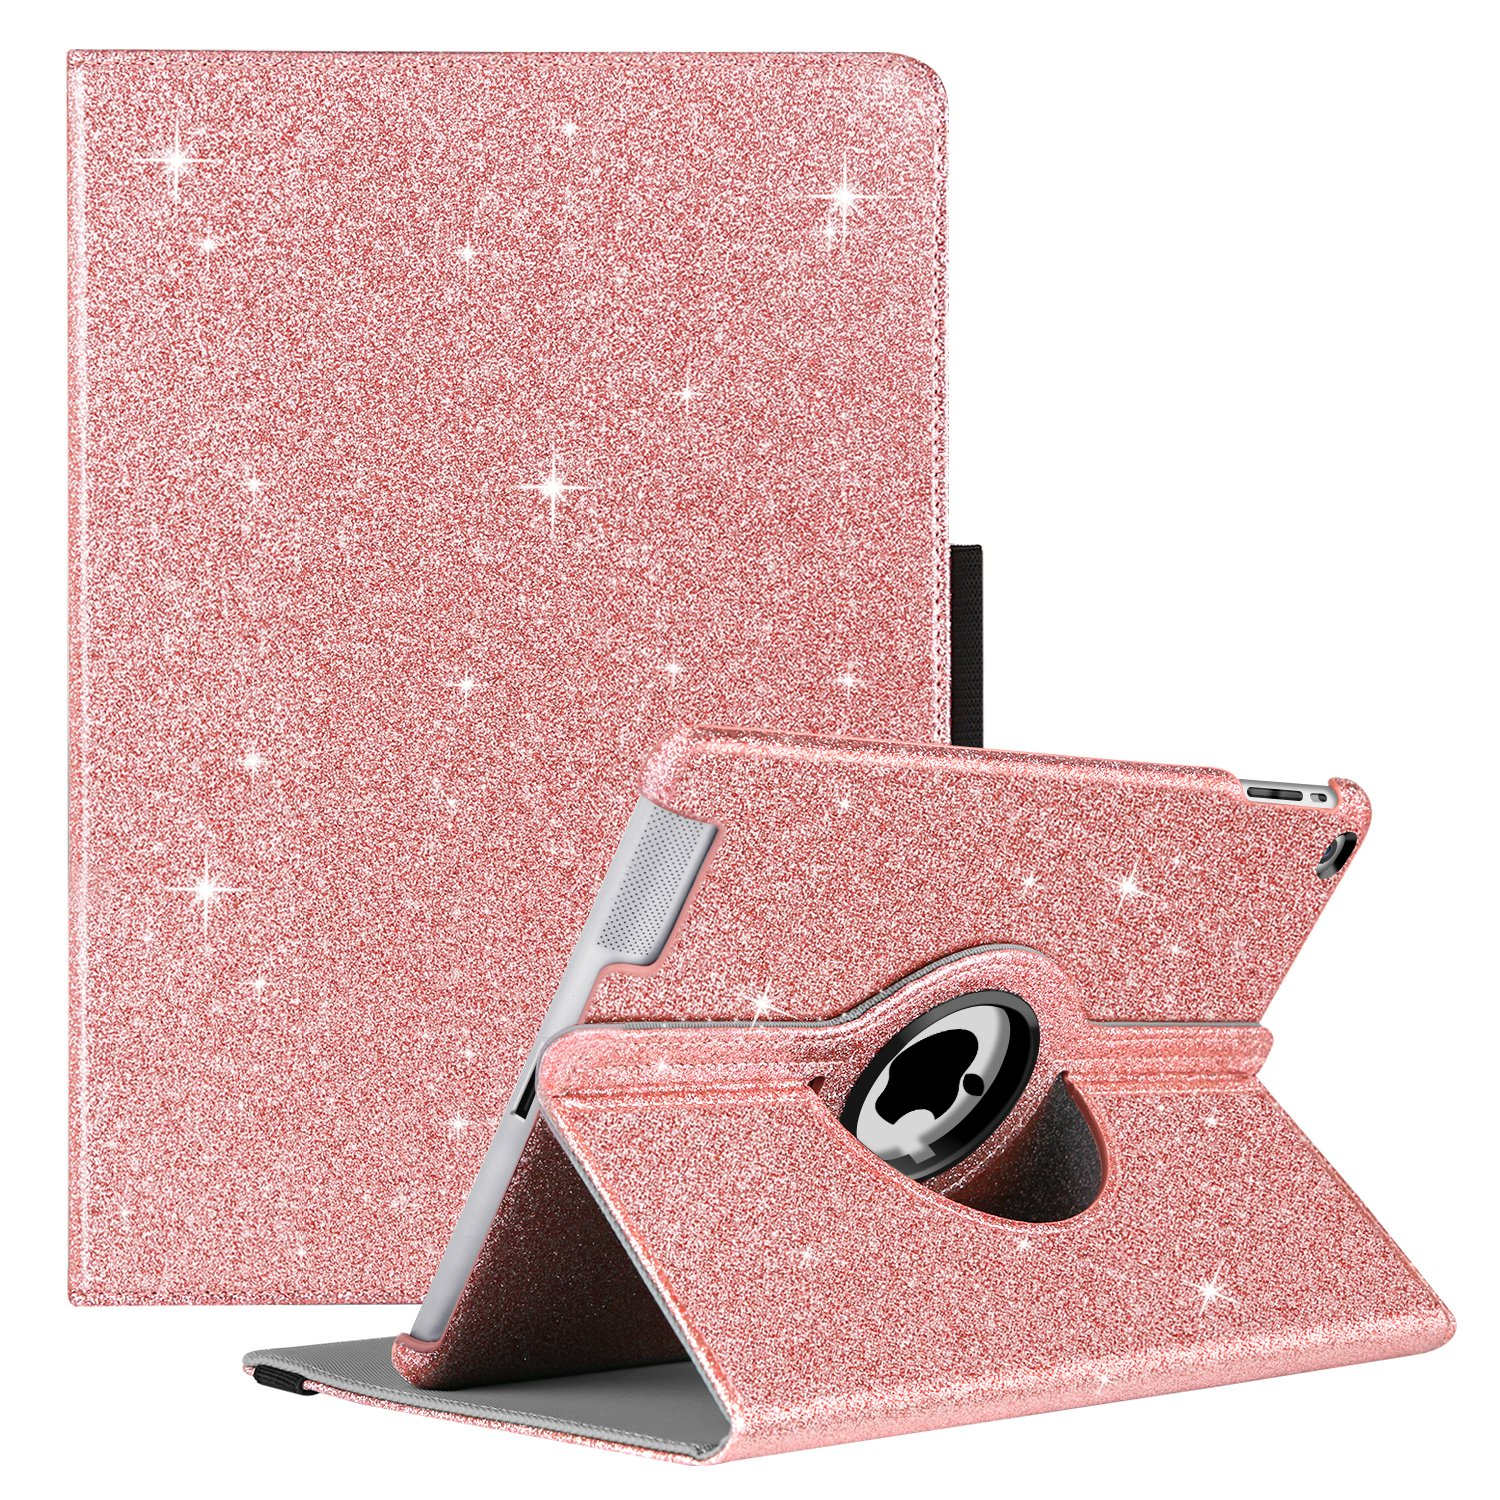 GUAGUA iPad 2 Case iPad 3 Case iPad 4 Case Glitter Sparkly 360 Degree Rotating Stand Full Body Cover Luxury PU Leather Stylus Holder Smart Auto Wake/Sleep Protective Case for iPad 2/3/4 Rose Gold